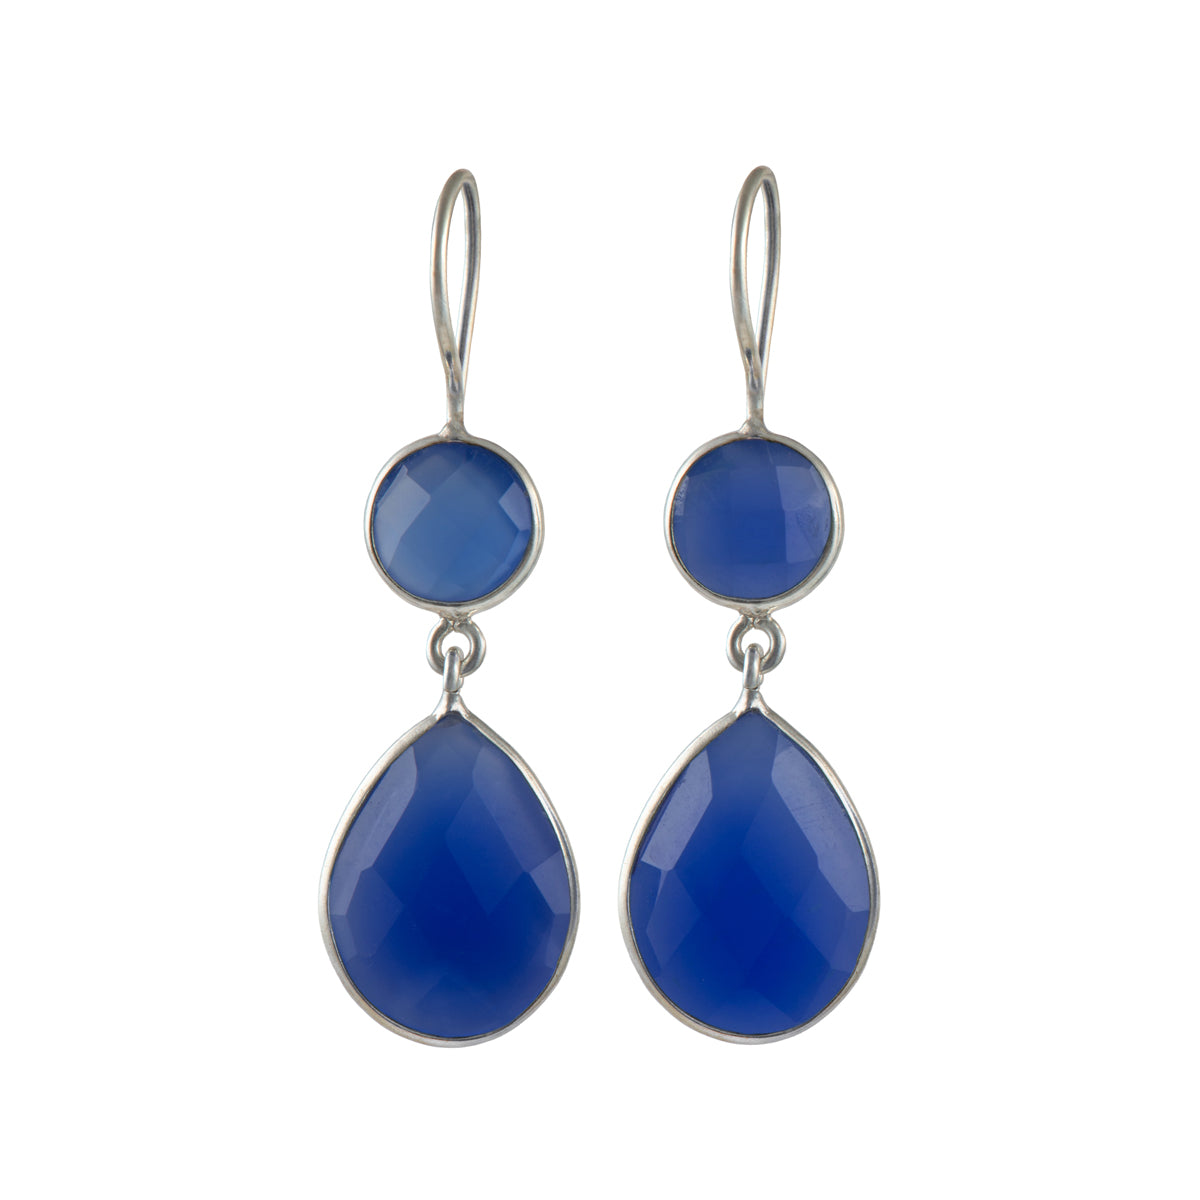 Blue Chalcedony Gemstone Two Stone Earrings in Sterling Silver - Teardrop